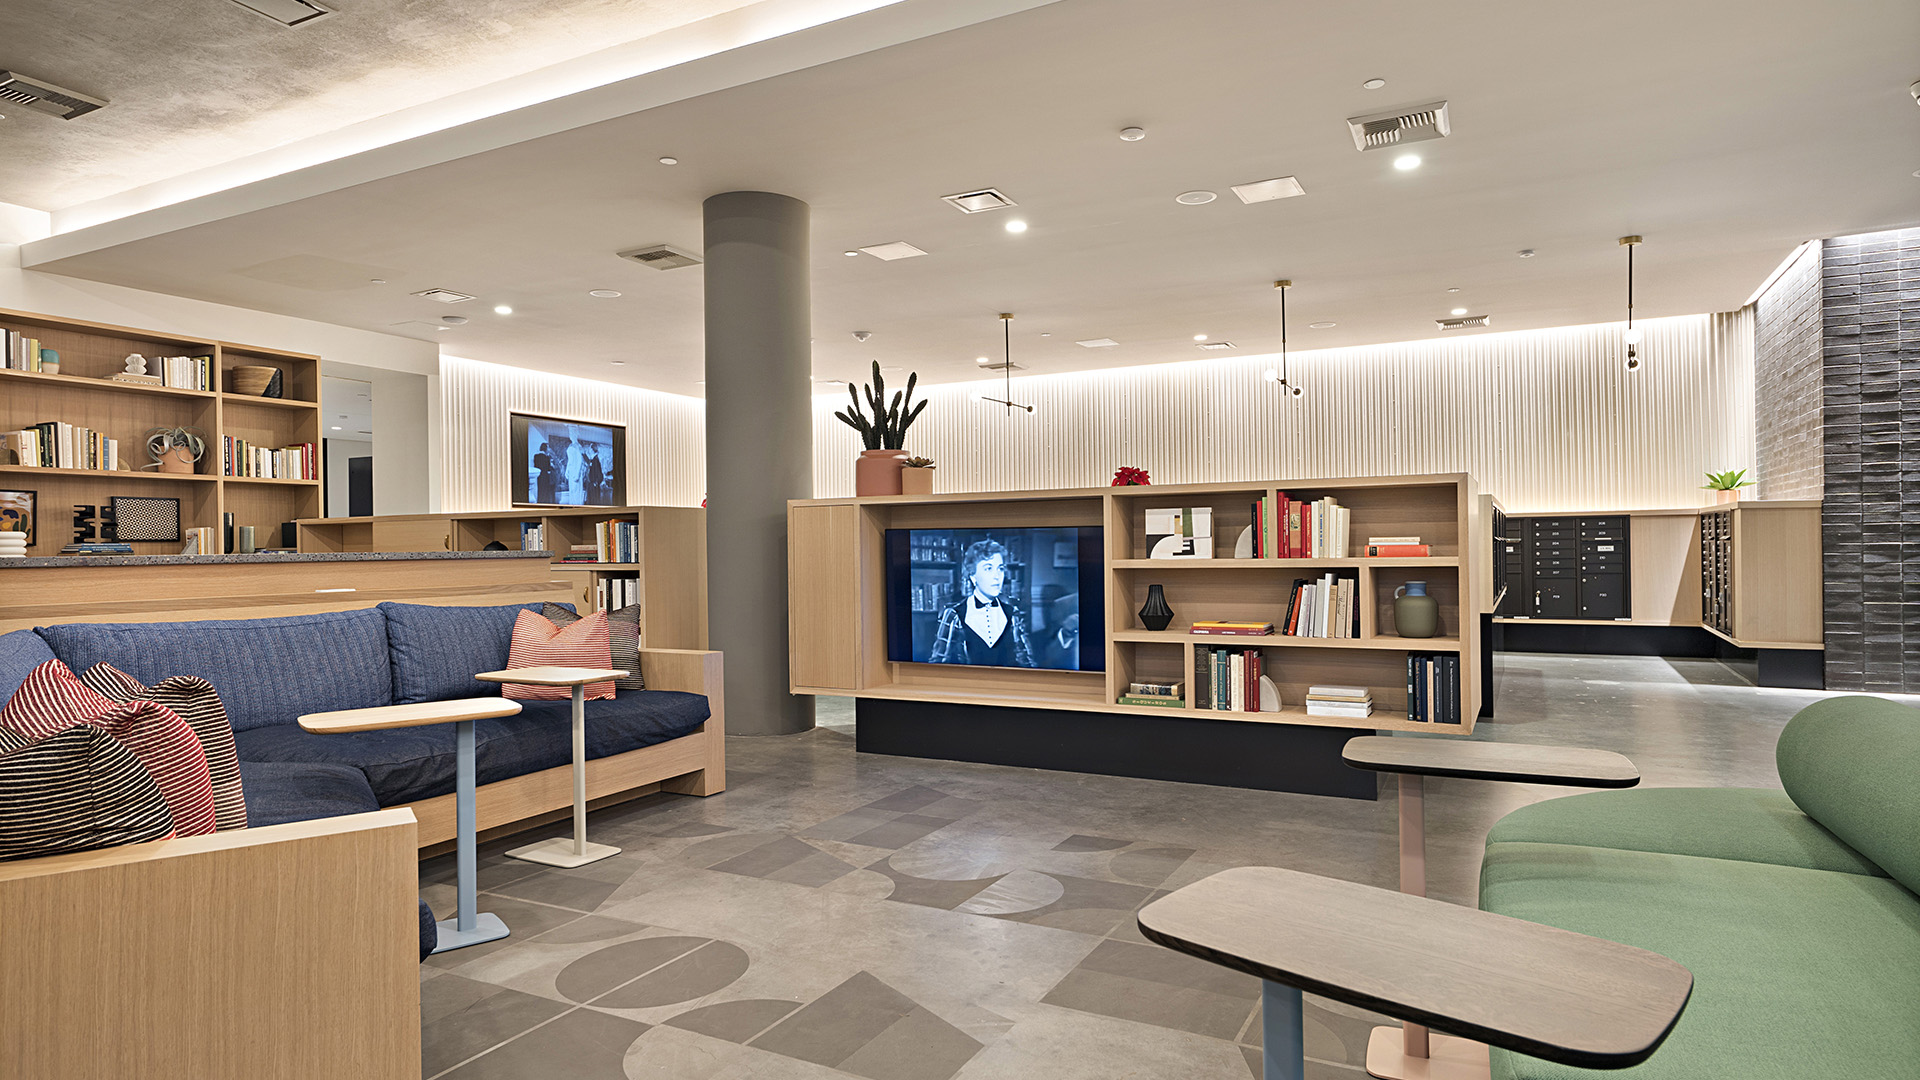 Lobby area with modern built-in seating, credenza with TV and bookshelves, and geometric floor pattern.